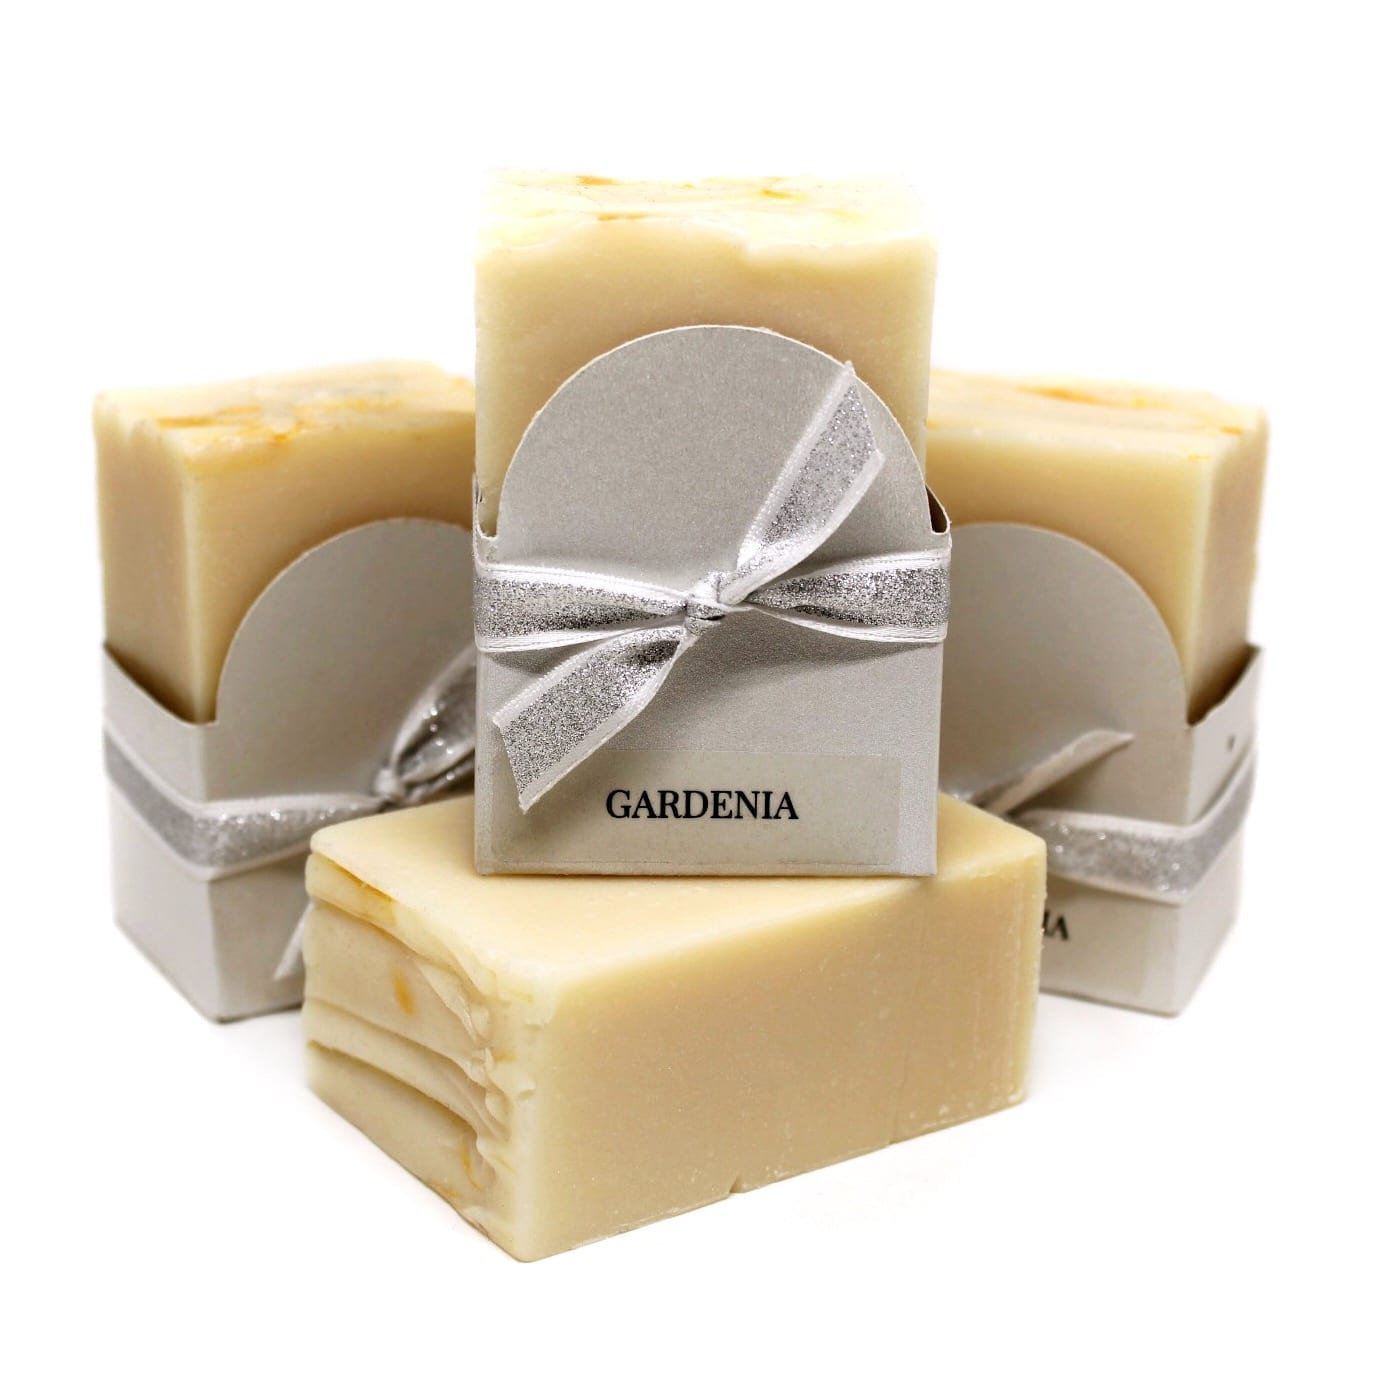 Gardenia Vegan Soap